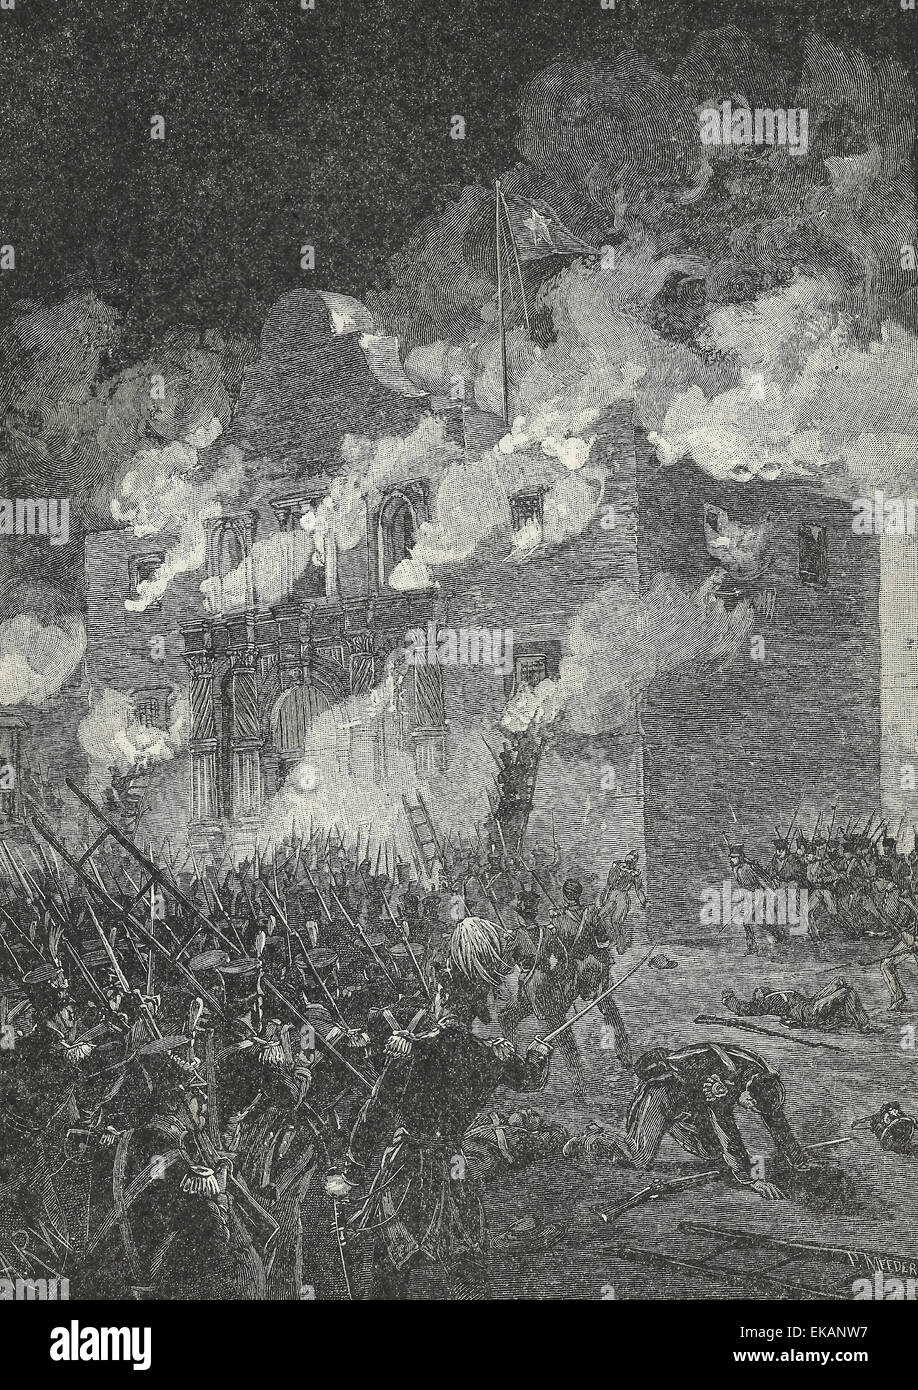 The fall of the Alamo, March 1836 - Stock Image